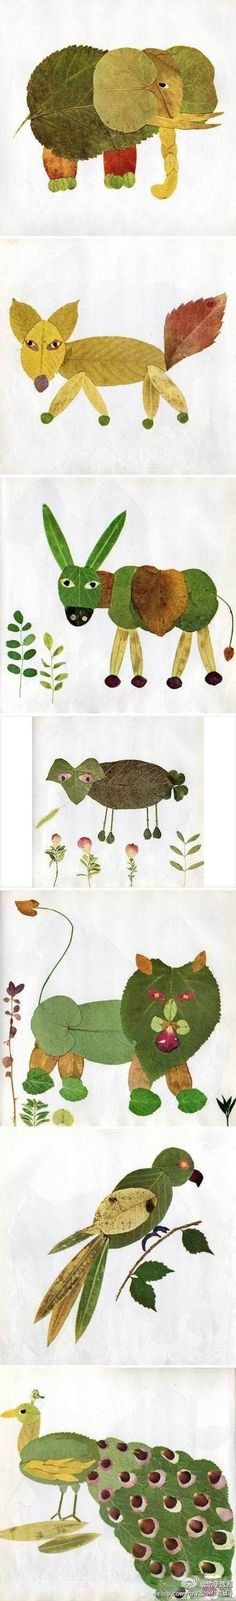 LEAF ART - animals and birds